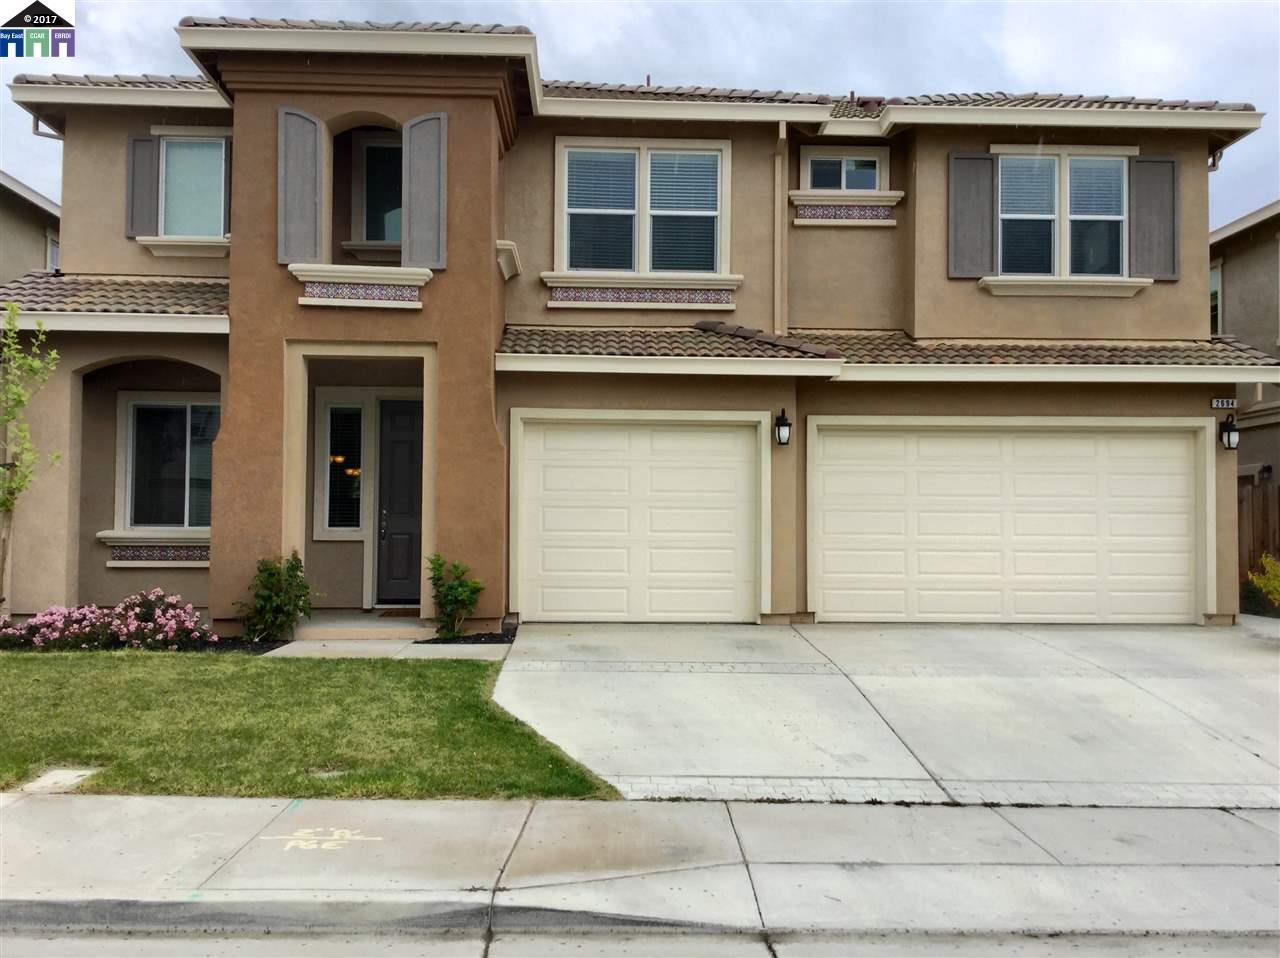 Single Family Home for Sale at 2694 Tampico Drive Bay Point, California 94565 United States